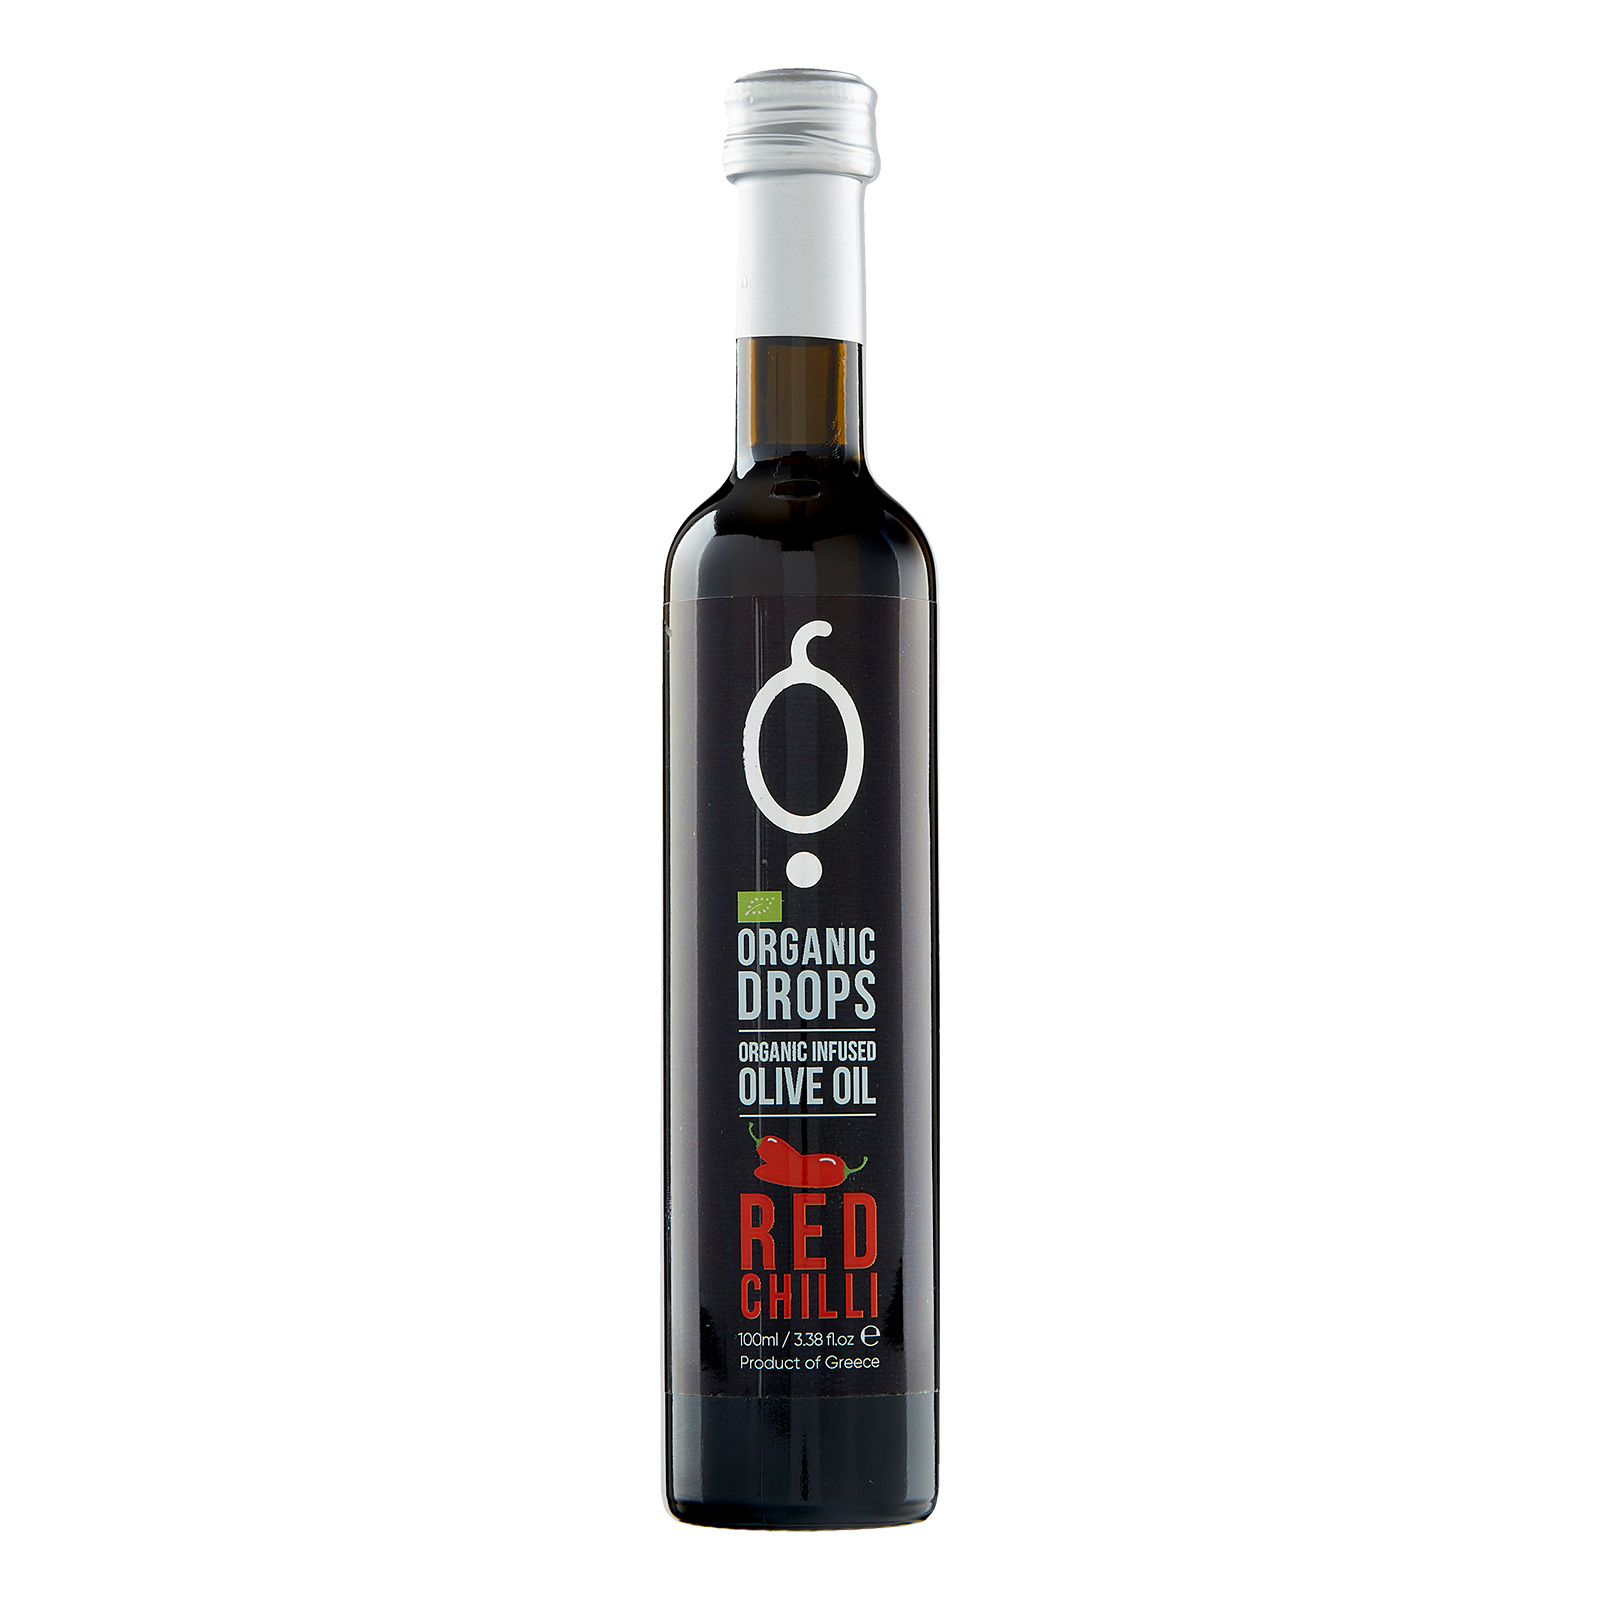 Organic Drops Red Chili Olive Oil 3.38 fl.oz Bottle